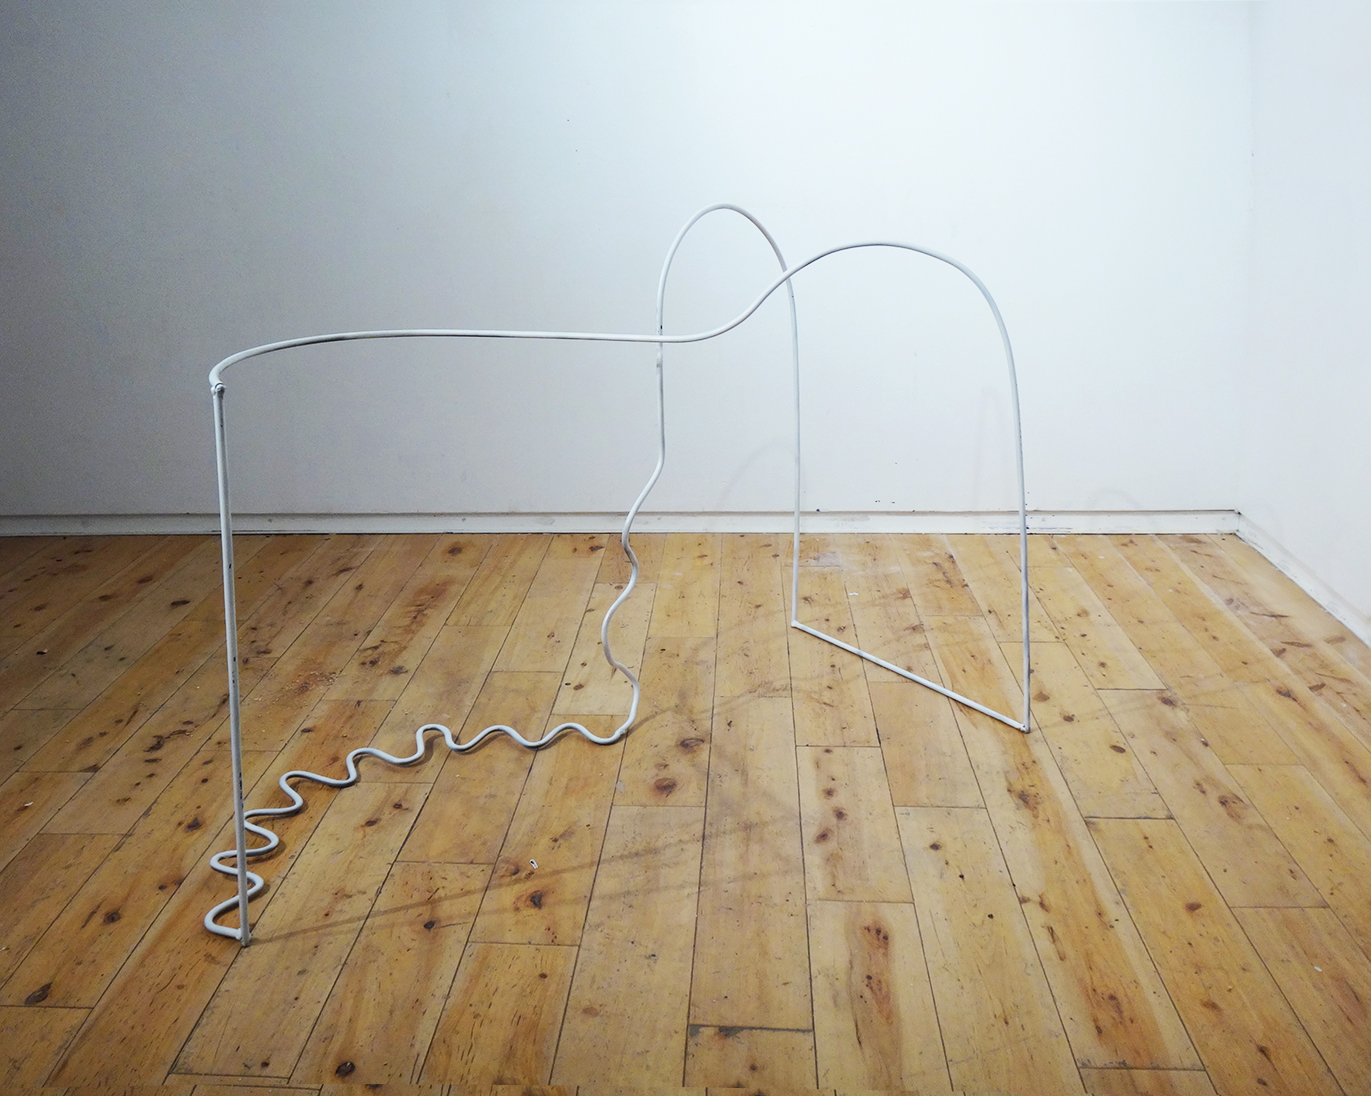 Made at Ox-Bow School of Art and Artists' Residency; recipient of Portfolio Merit Scholarship, 2019, steel and spray paint